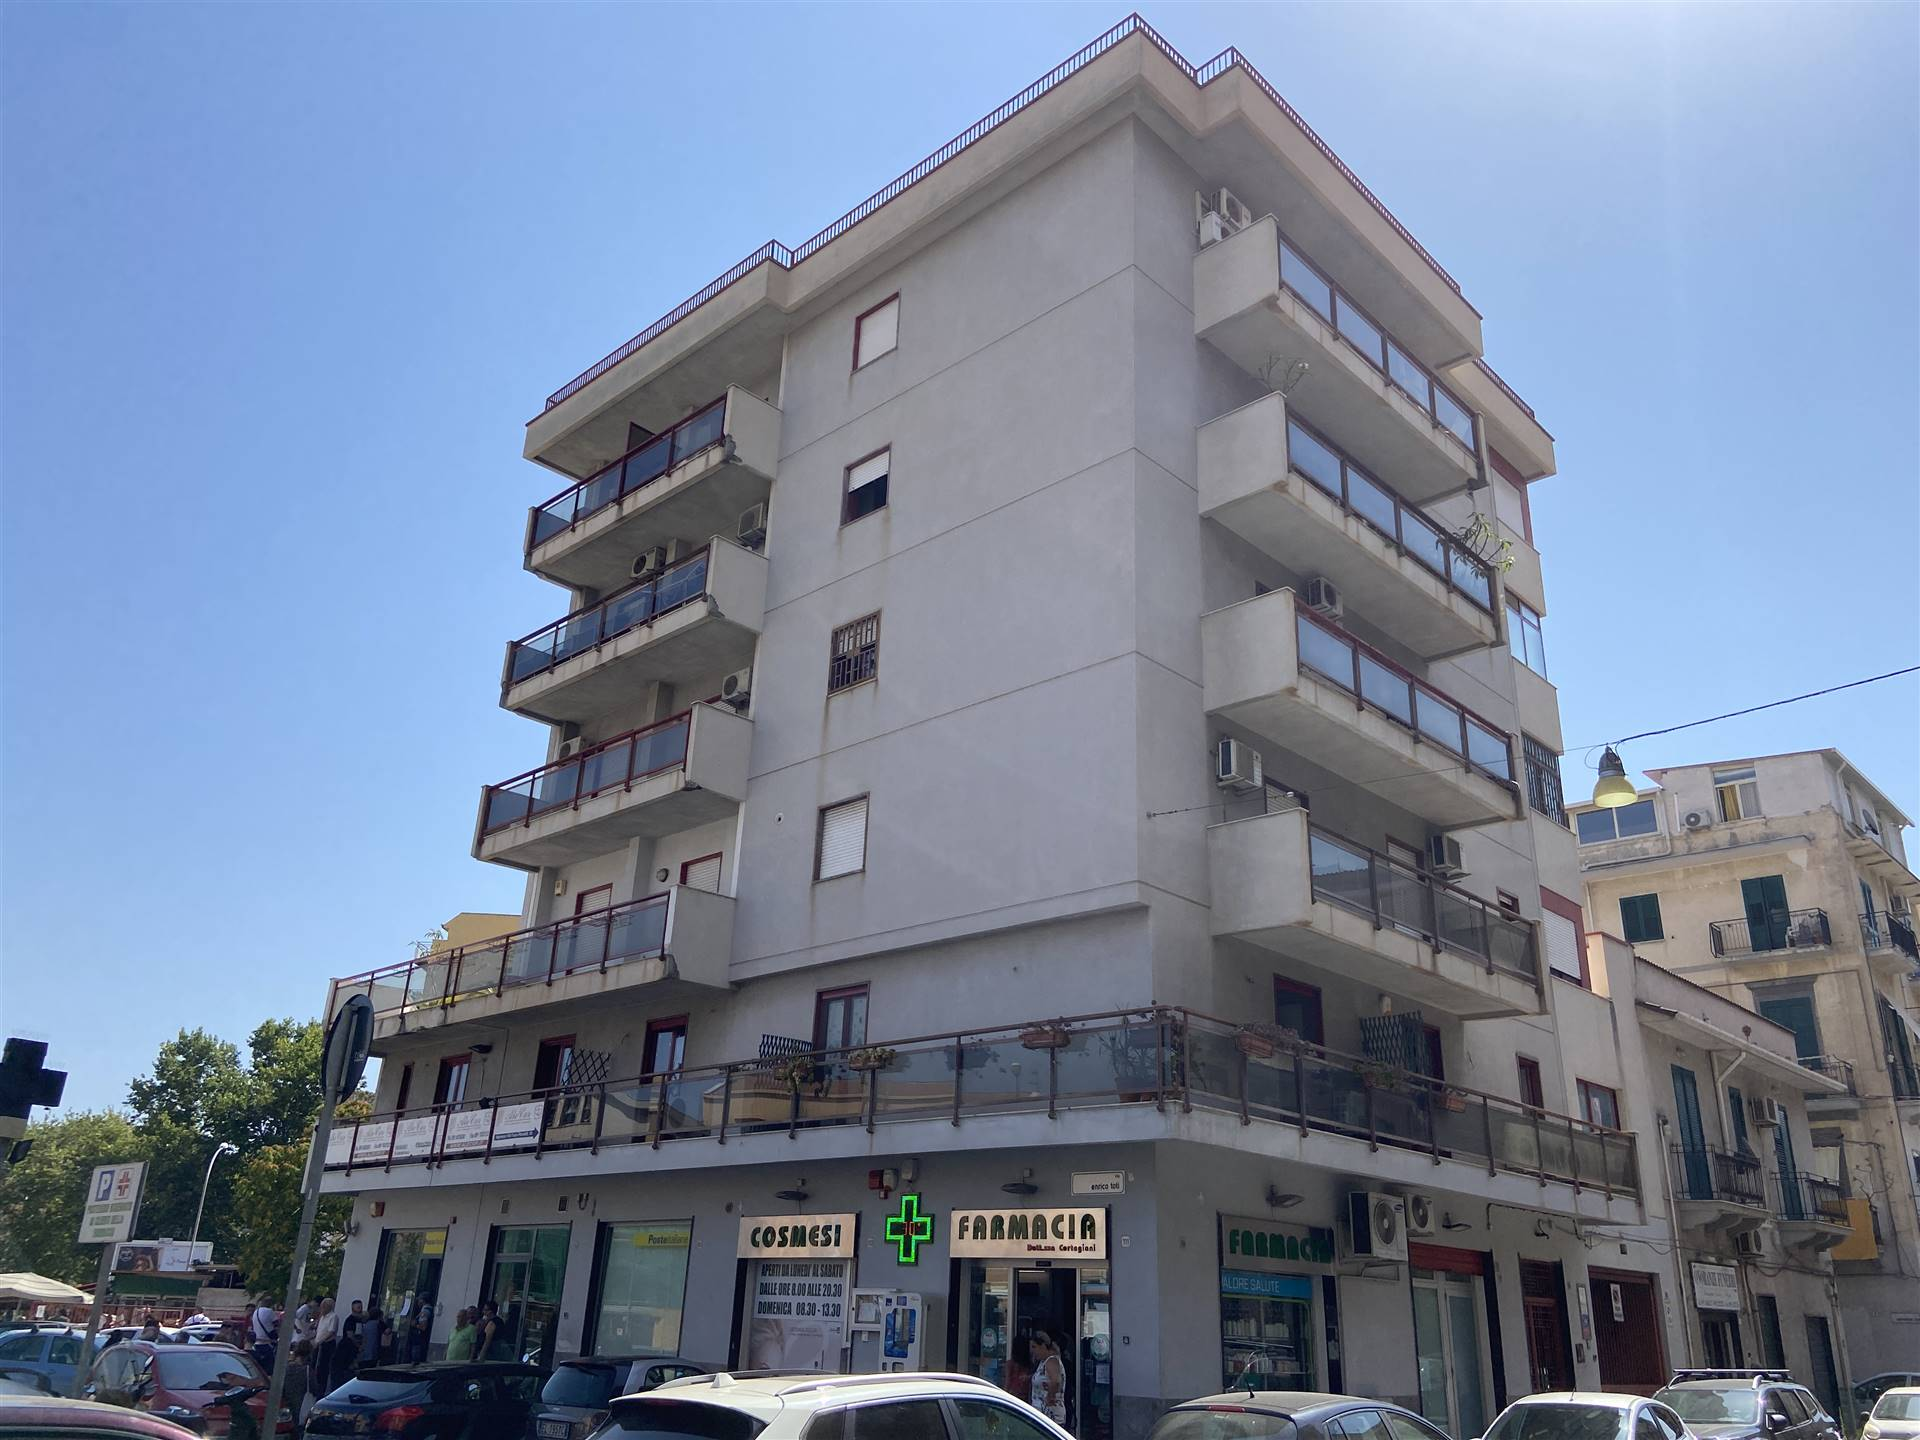 CORSO TUKORY, PALERMO, Office for rent of 65 Sq. mt., Habitable, Heating Individual heating system, Energetic class: A, Epi: 46,7 kwh/m3 year, placed